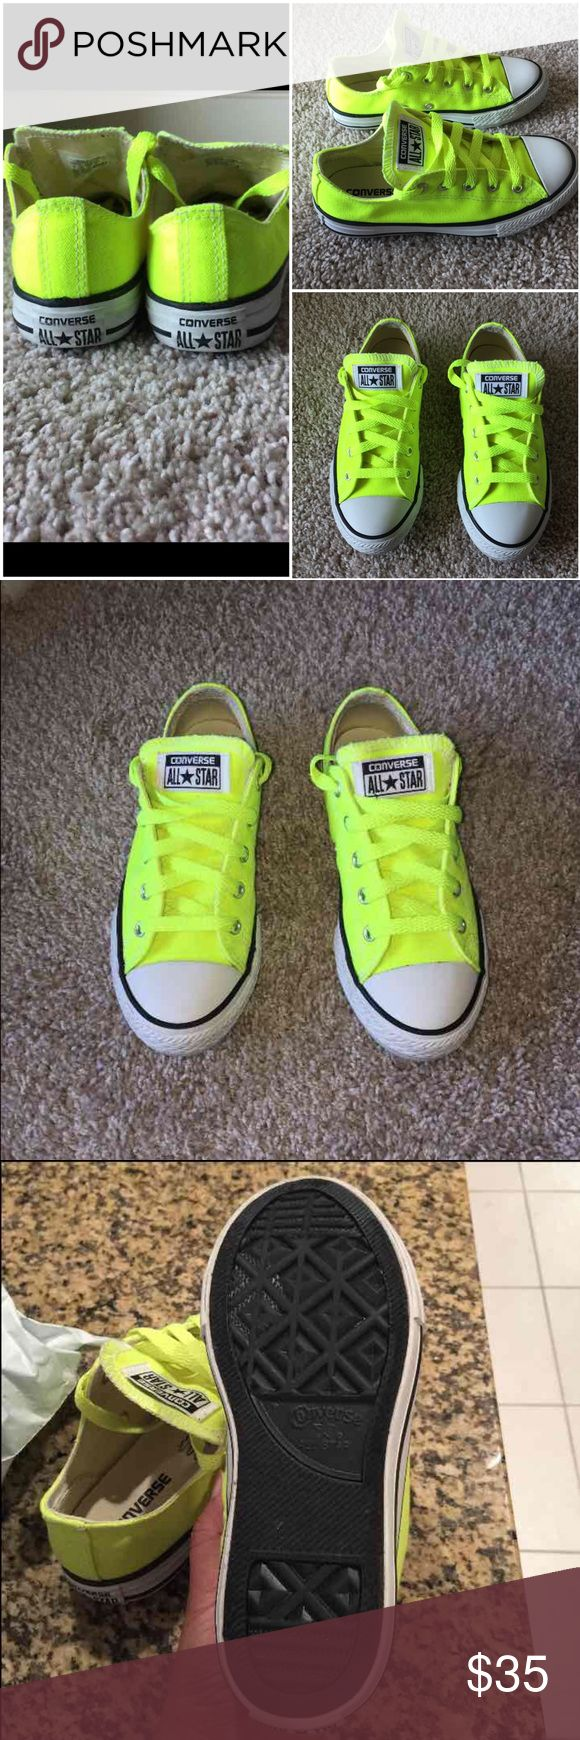 Converse neon yellow Worn two times. Super great condition! It's clean, well loved. Comes from a pet free and smoke free home. Converse Shoes